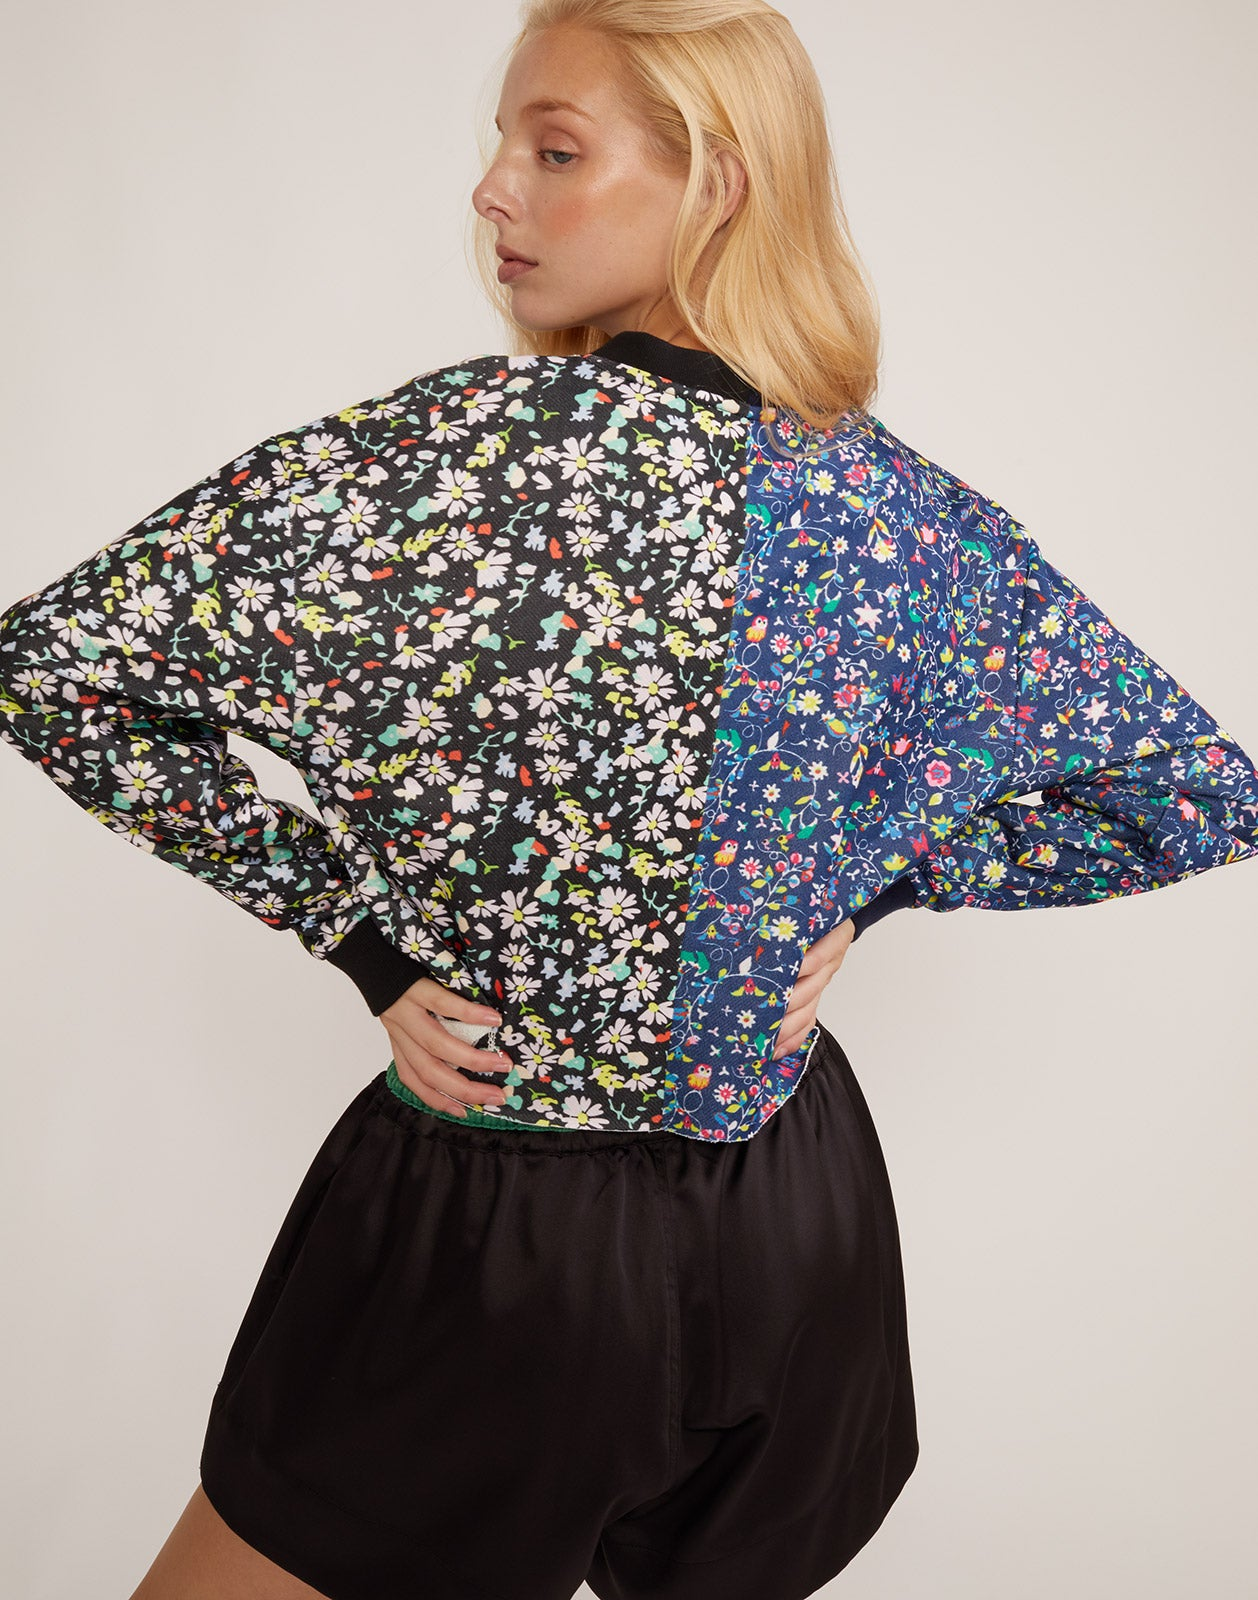 Back view of the CRxBandier CaliYork sweatshirt in mini floral print.